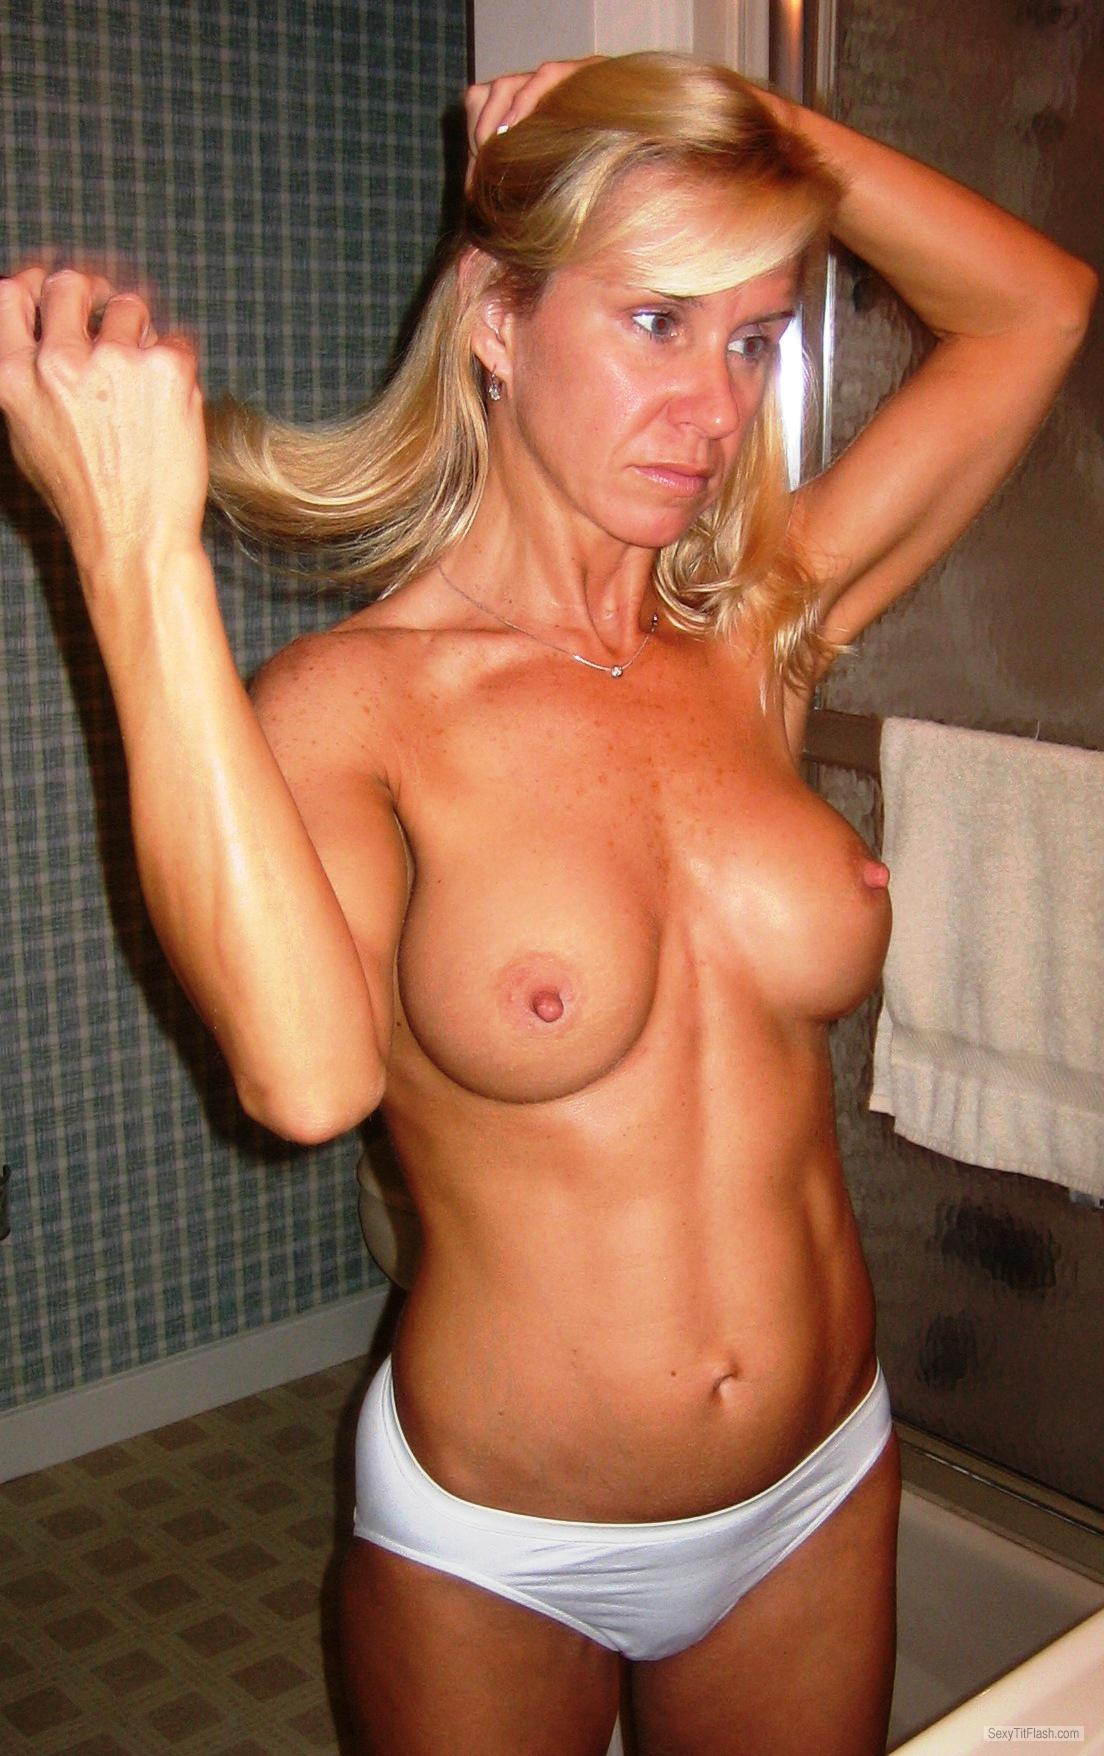 Tit Flash: Wife's Medium Tits - Topless Cass from United States